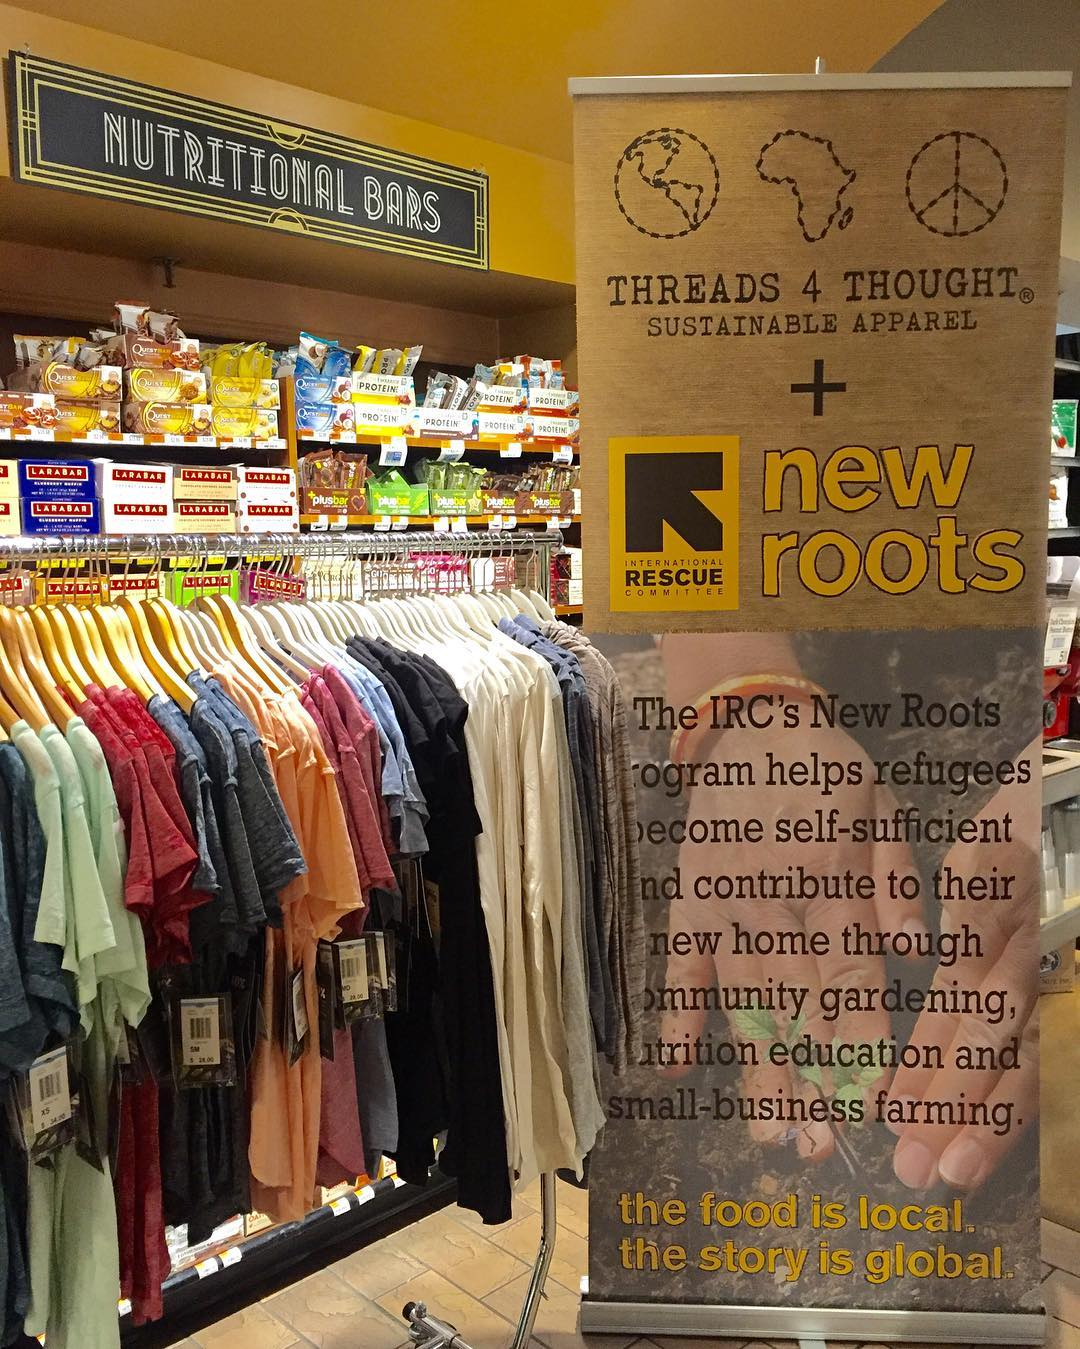 Posted up at @wholefoodsnyc today for 5% Day! 5% from all sales at Whole Foods Manhattan stores will be donated to our partner @theirc New Roots program! Come shop today at Whole Foods NYC stores!  #foodforthought #forceforchange #livesustainably #NYC